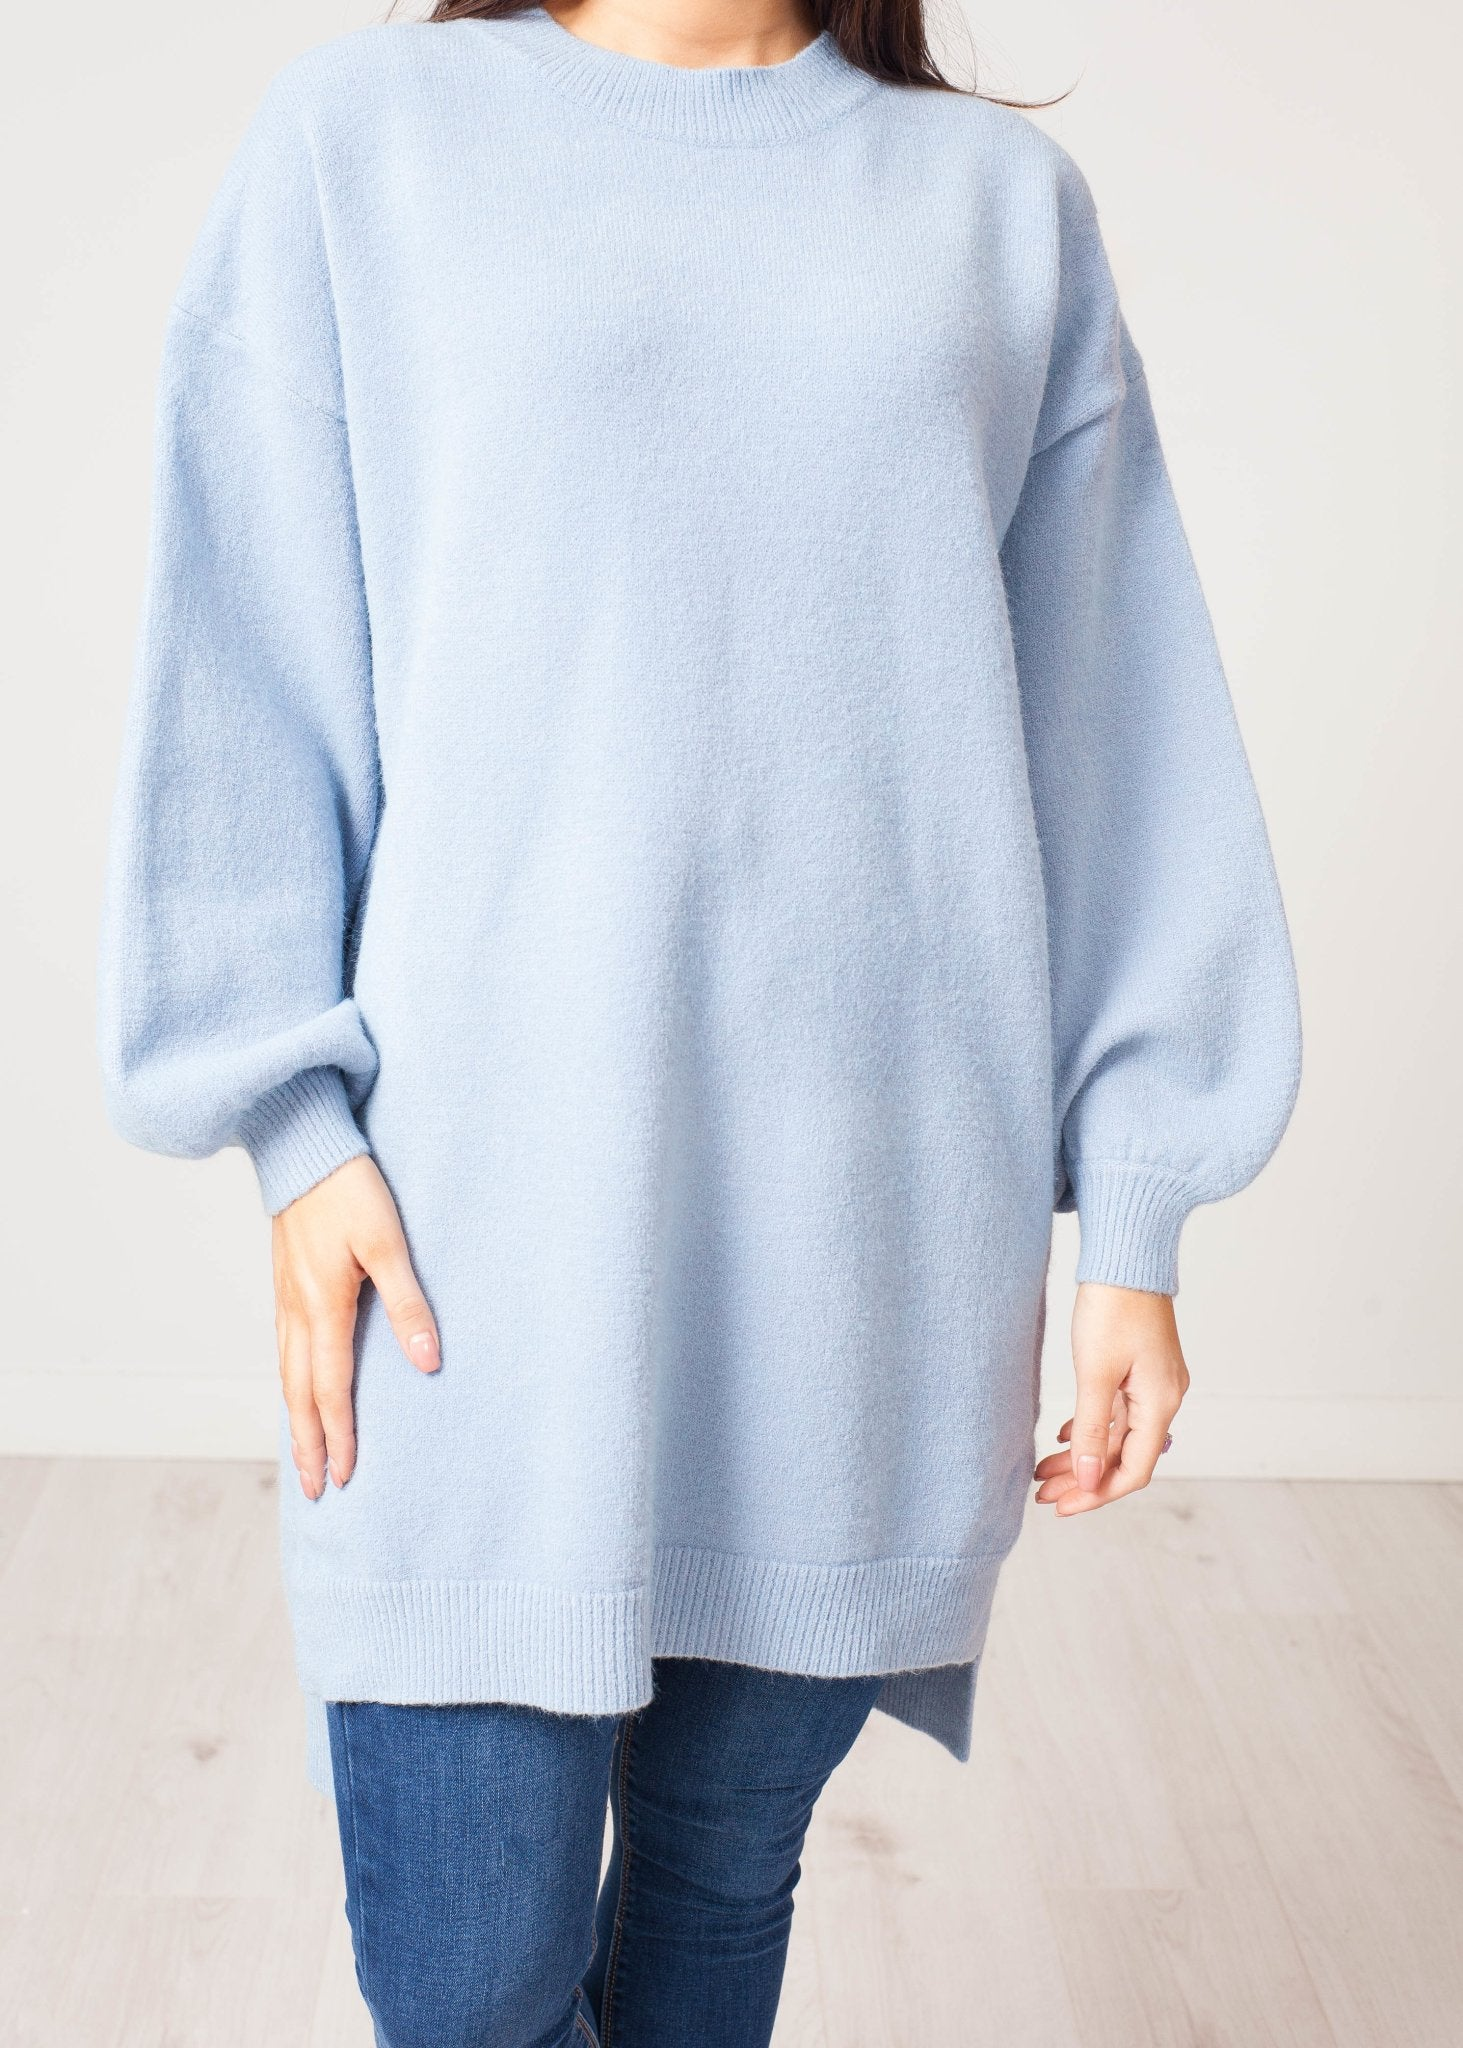 Jayme Longline Jumper In Powder Blue - The Walk in Wardrobe